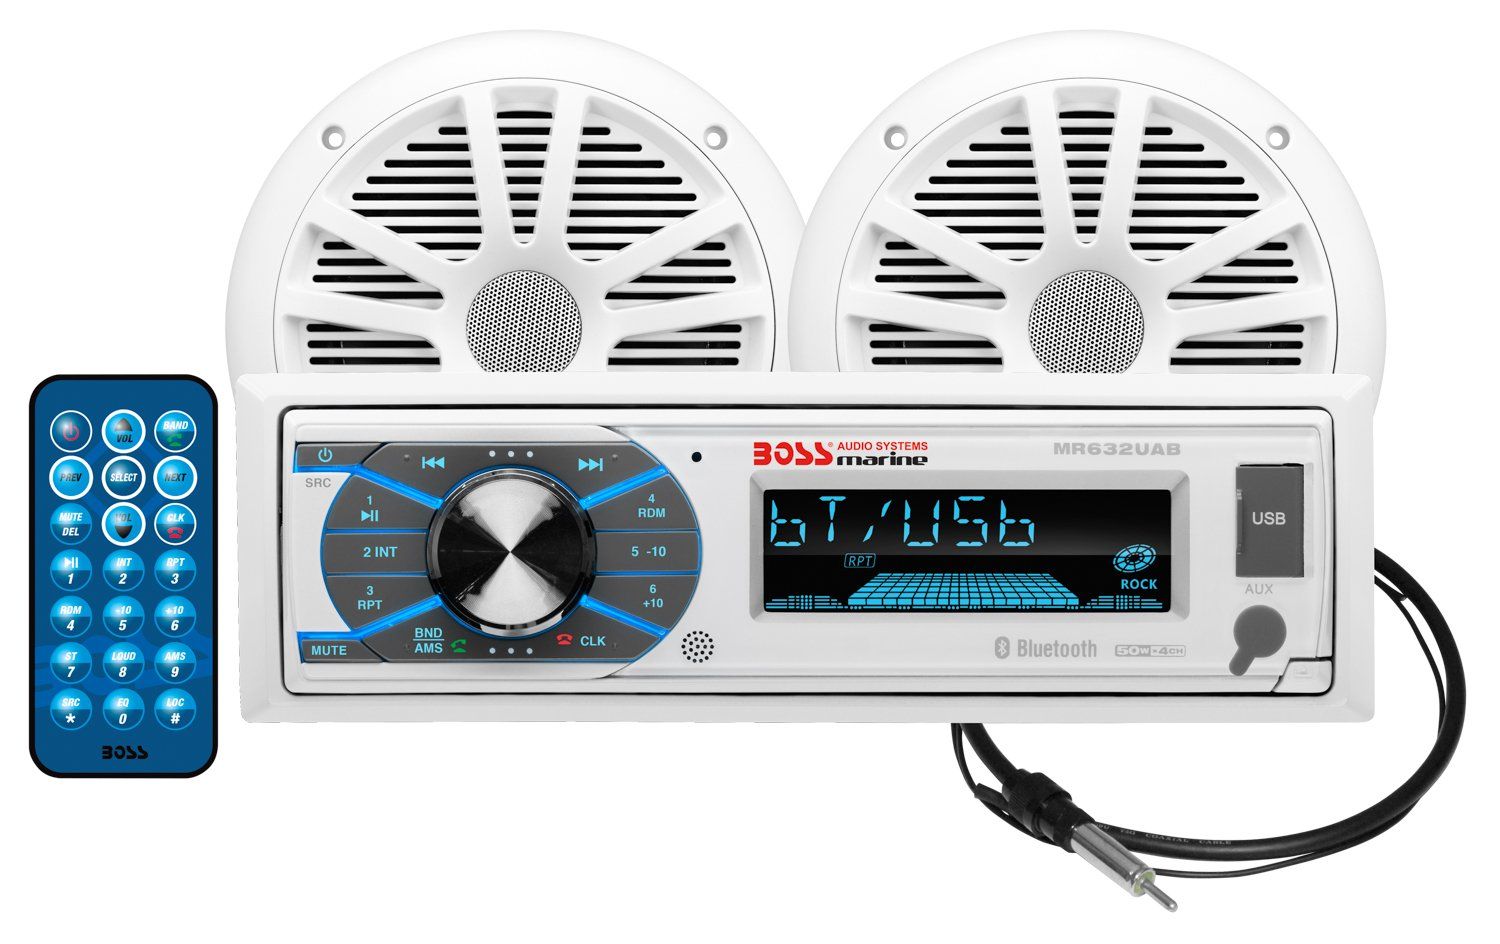 MP3 BOSS Audio Systems MCK632WB.6 Marine Receiver and Speaker Package Bluetooth Audio Aux-in 6.5 Inch Weatherproof Speakers Marine Dipole Antenna USB Weatherproof Receiver no CD Player AM FM